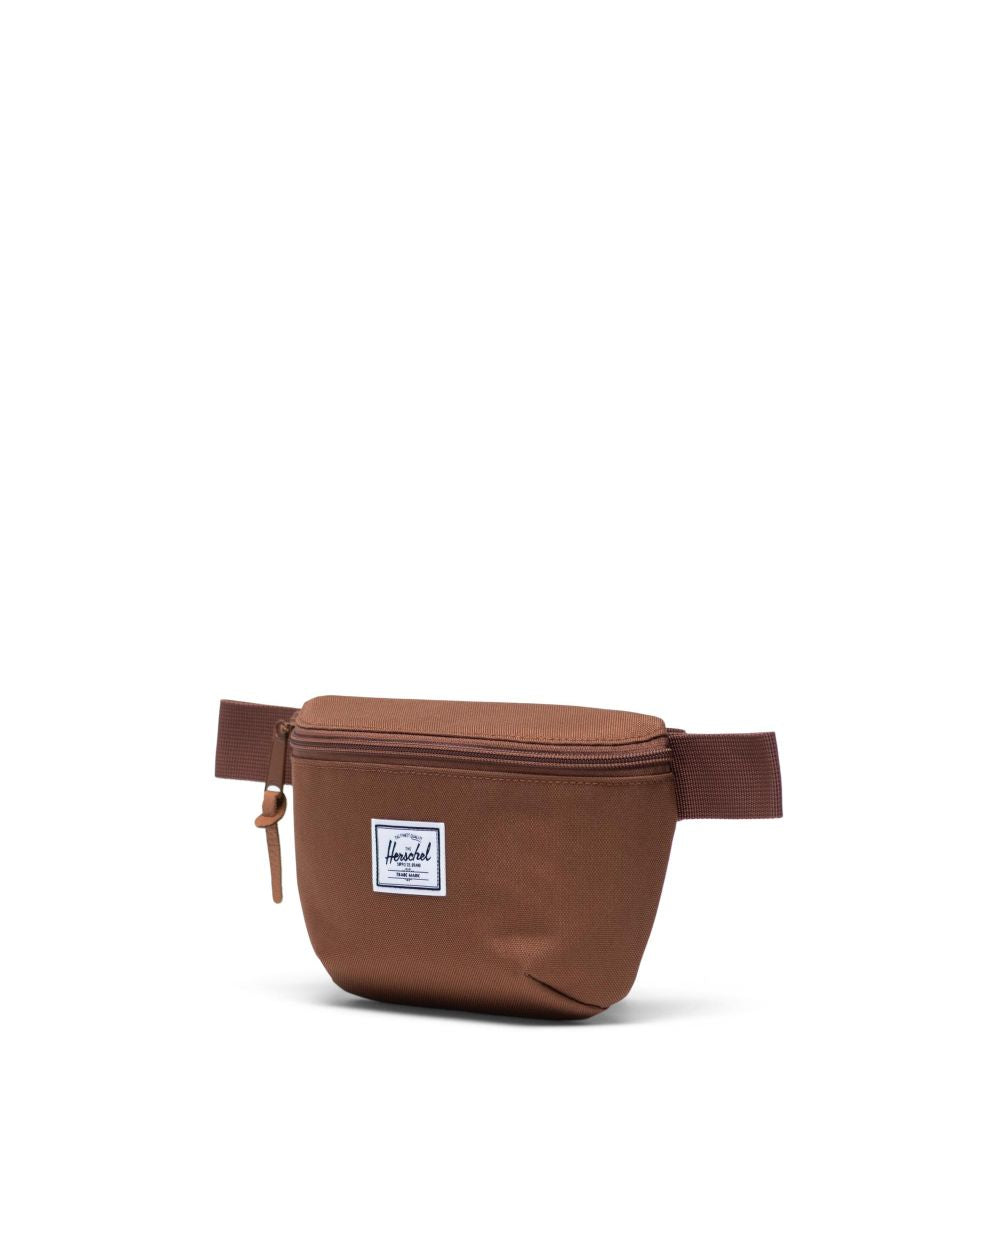 FOURTEEN HIP PACK - SADDLE BROWN